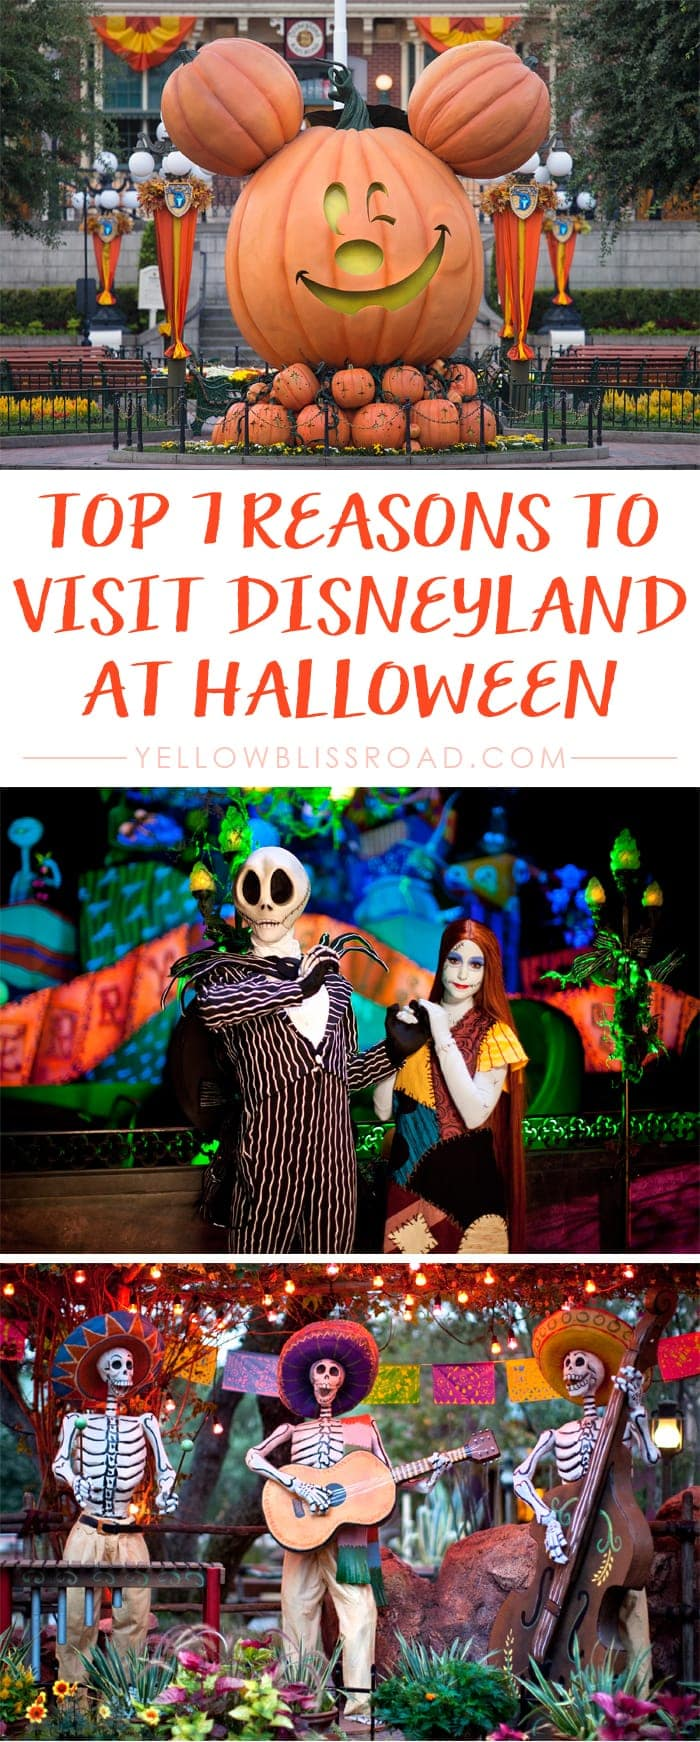 Top 7 Reasons to Visit Disneyland at Halloween